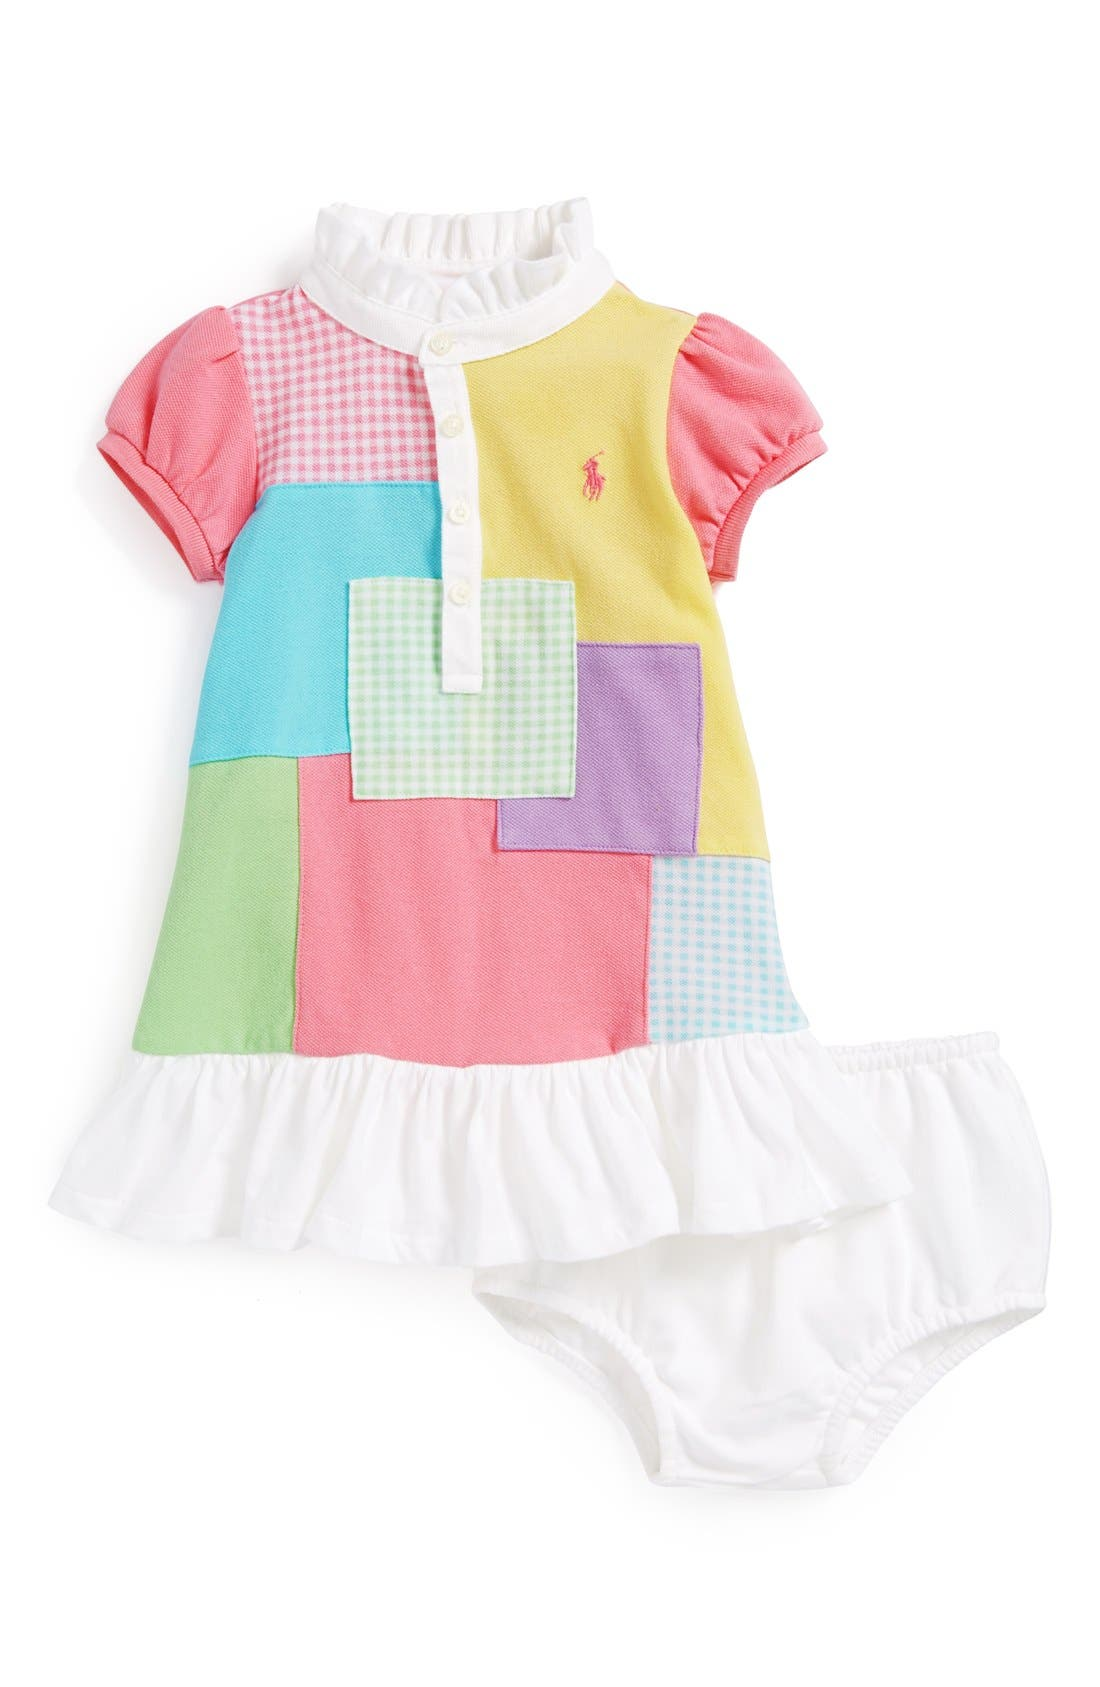 Alternate Image 1 Selected - Ralph Lauren Patchwork Dress & Bloomers (Baby Girls)